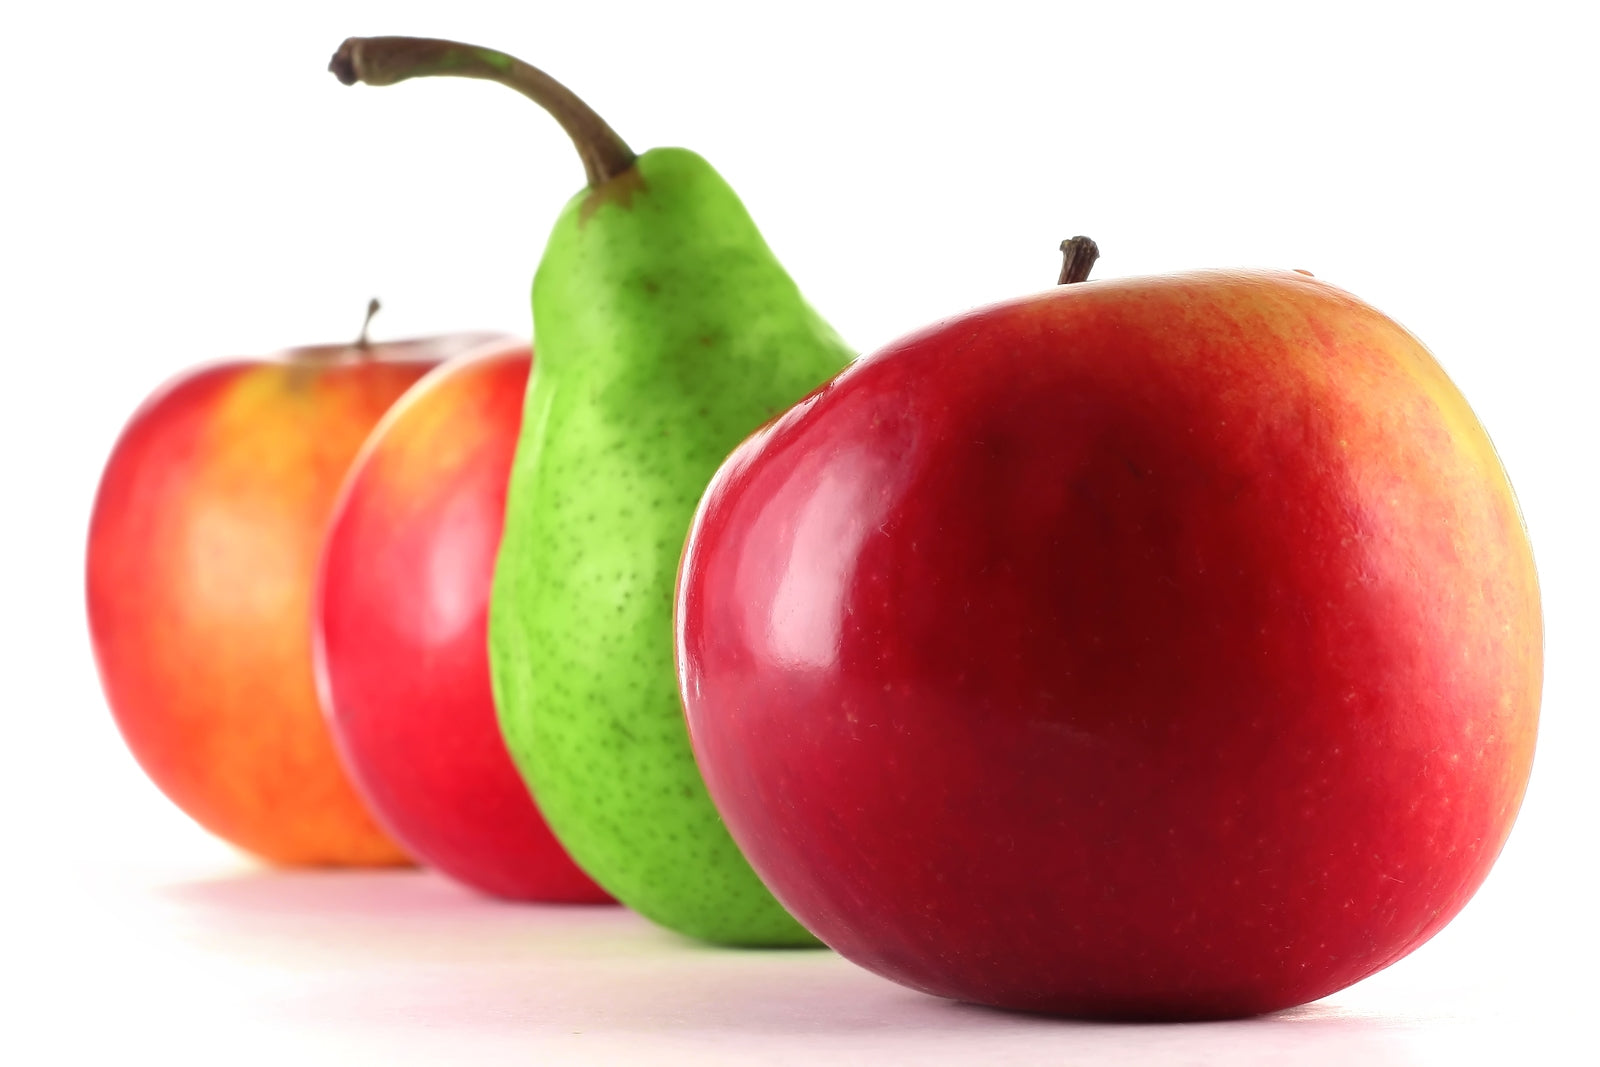 Apples and pears to show different body types in fat loss